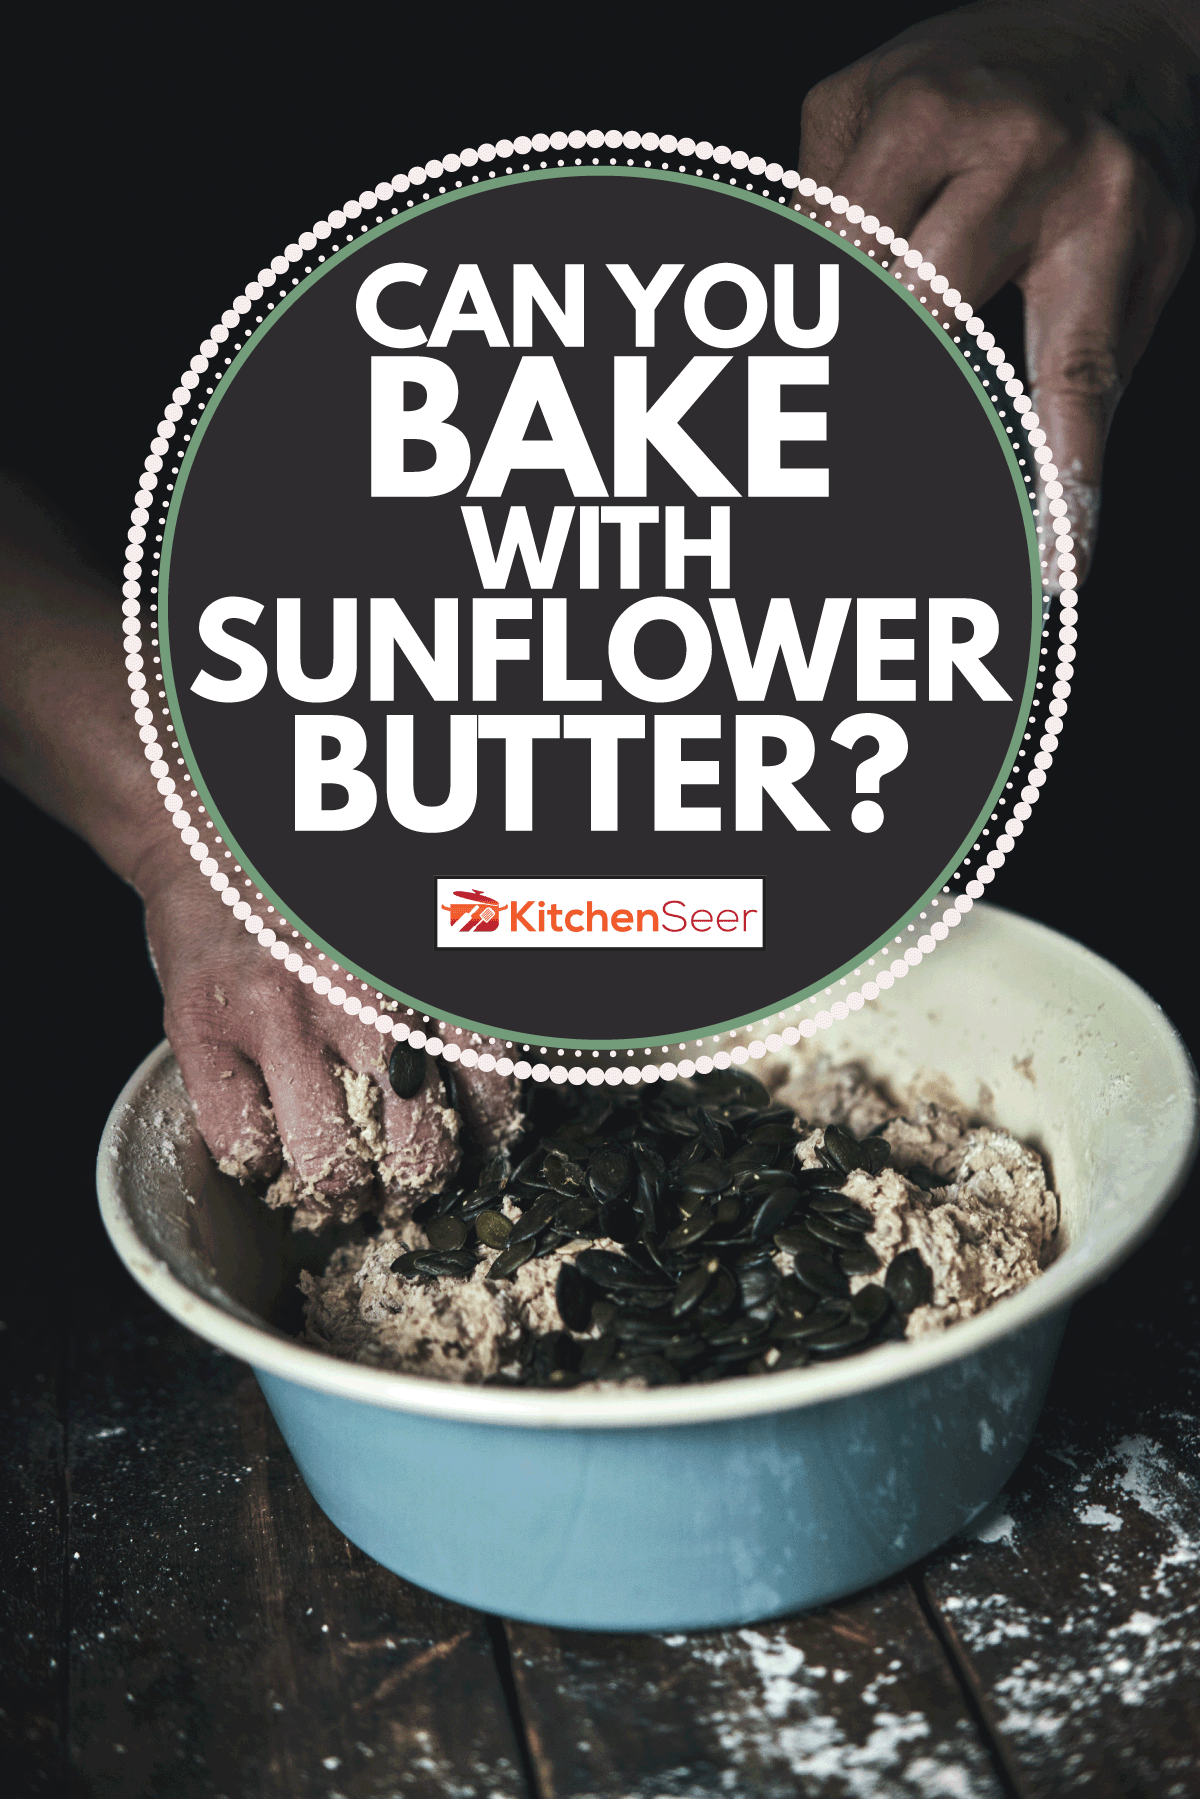 mixing in ingredients for baking. Can You Bake With Sunflower Butter